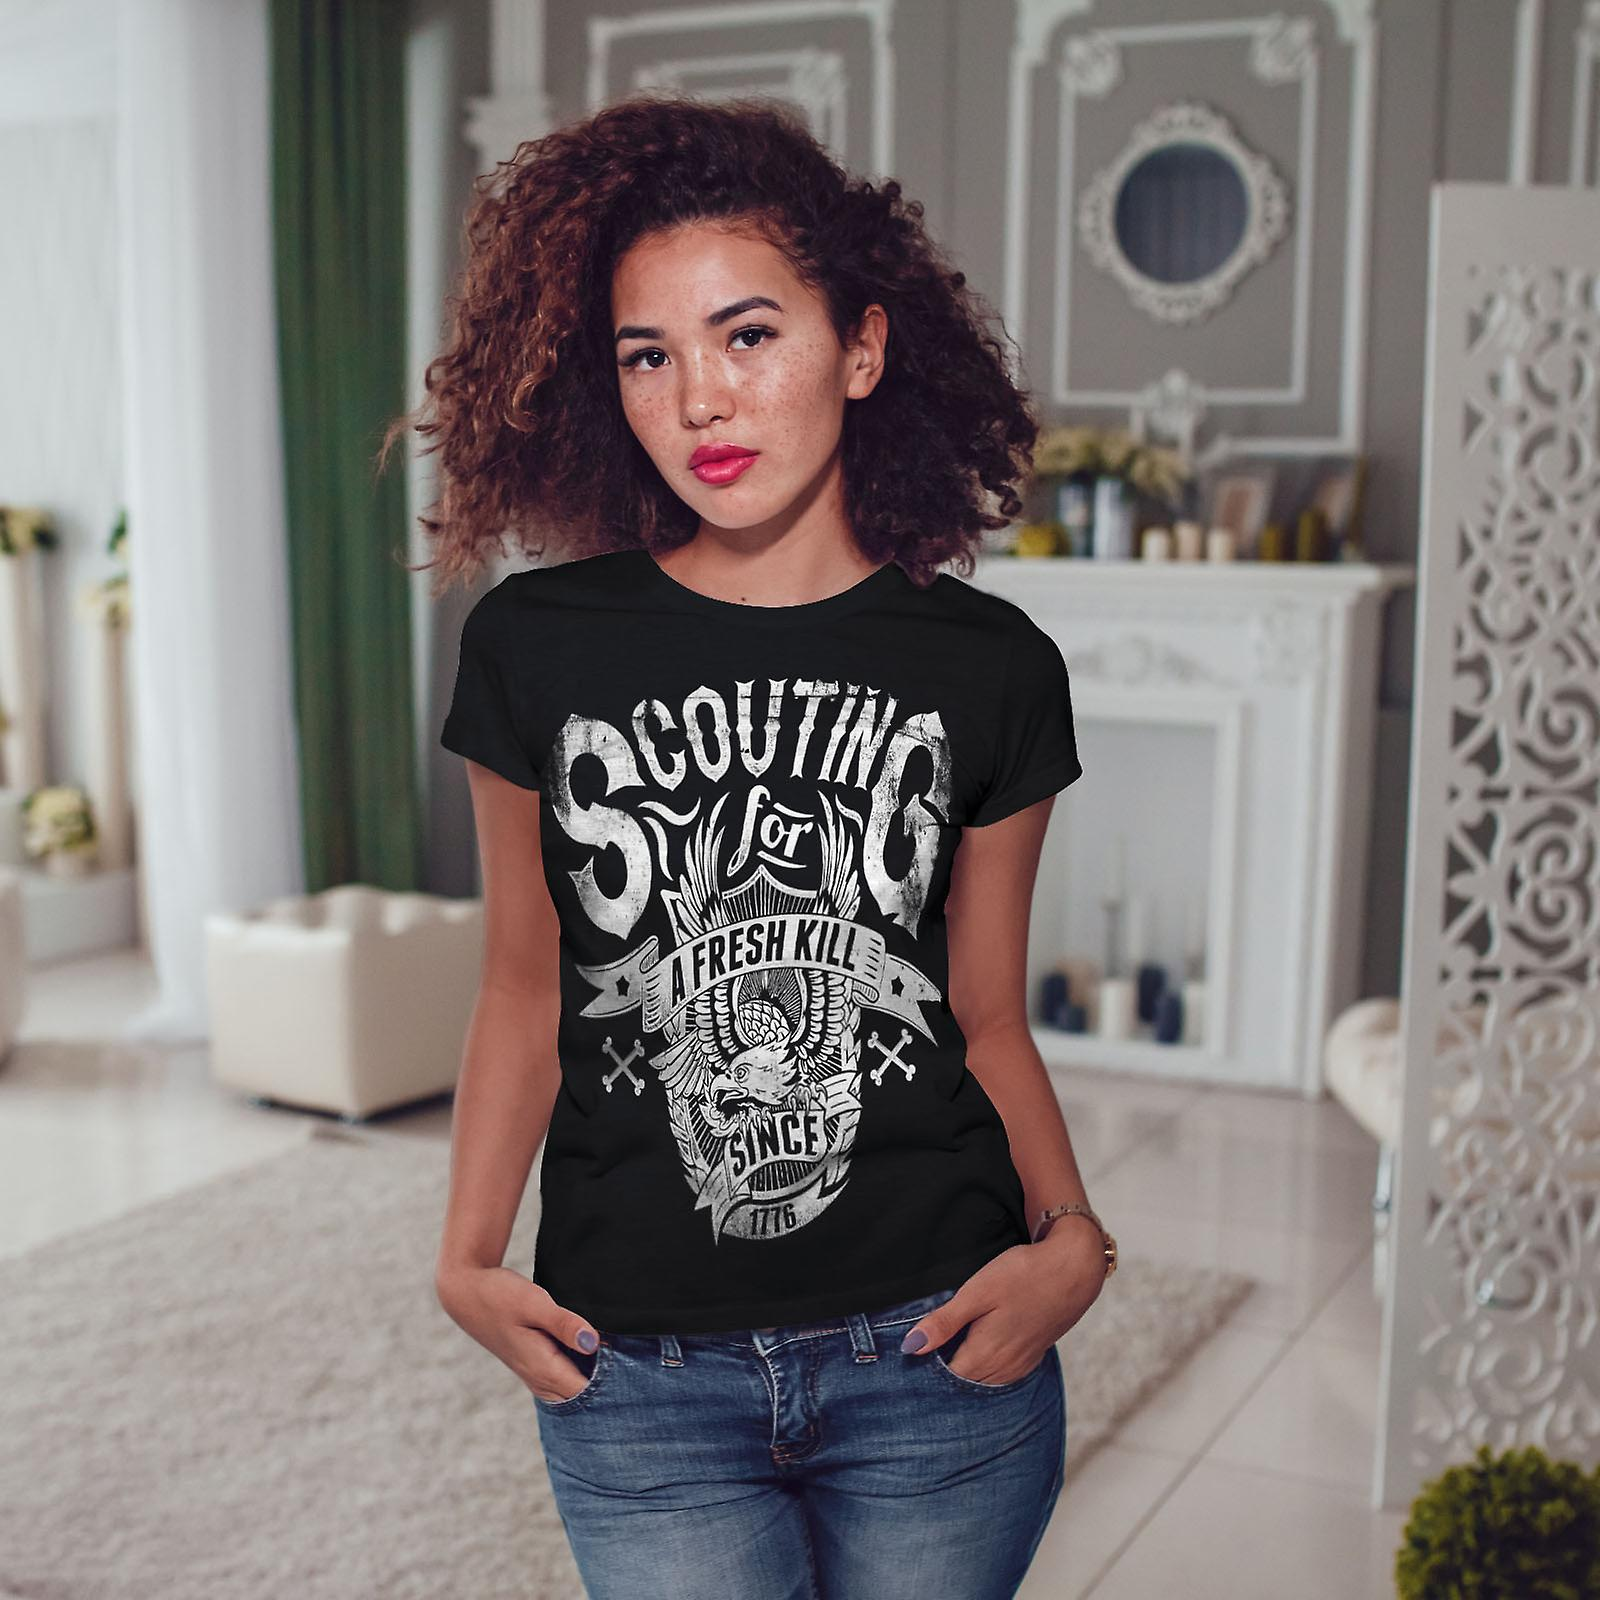 Scouting For Kill Women BlackT-shirt | Wellcoda